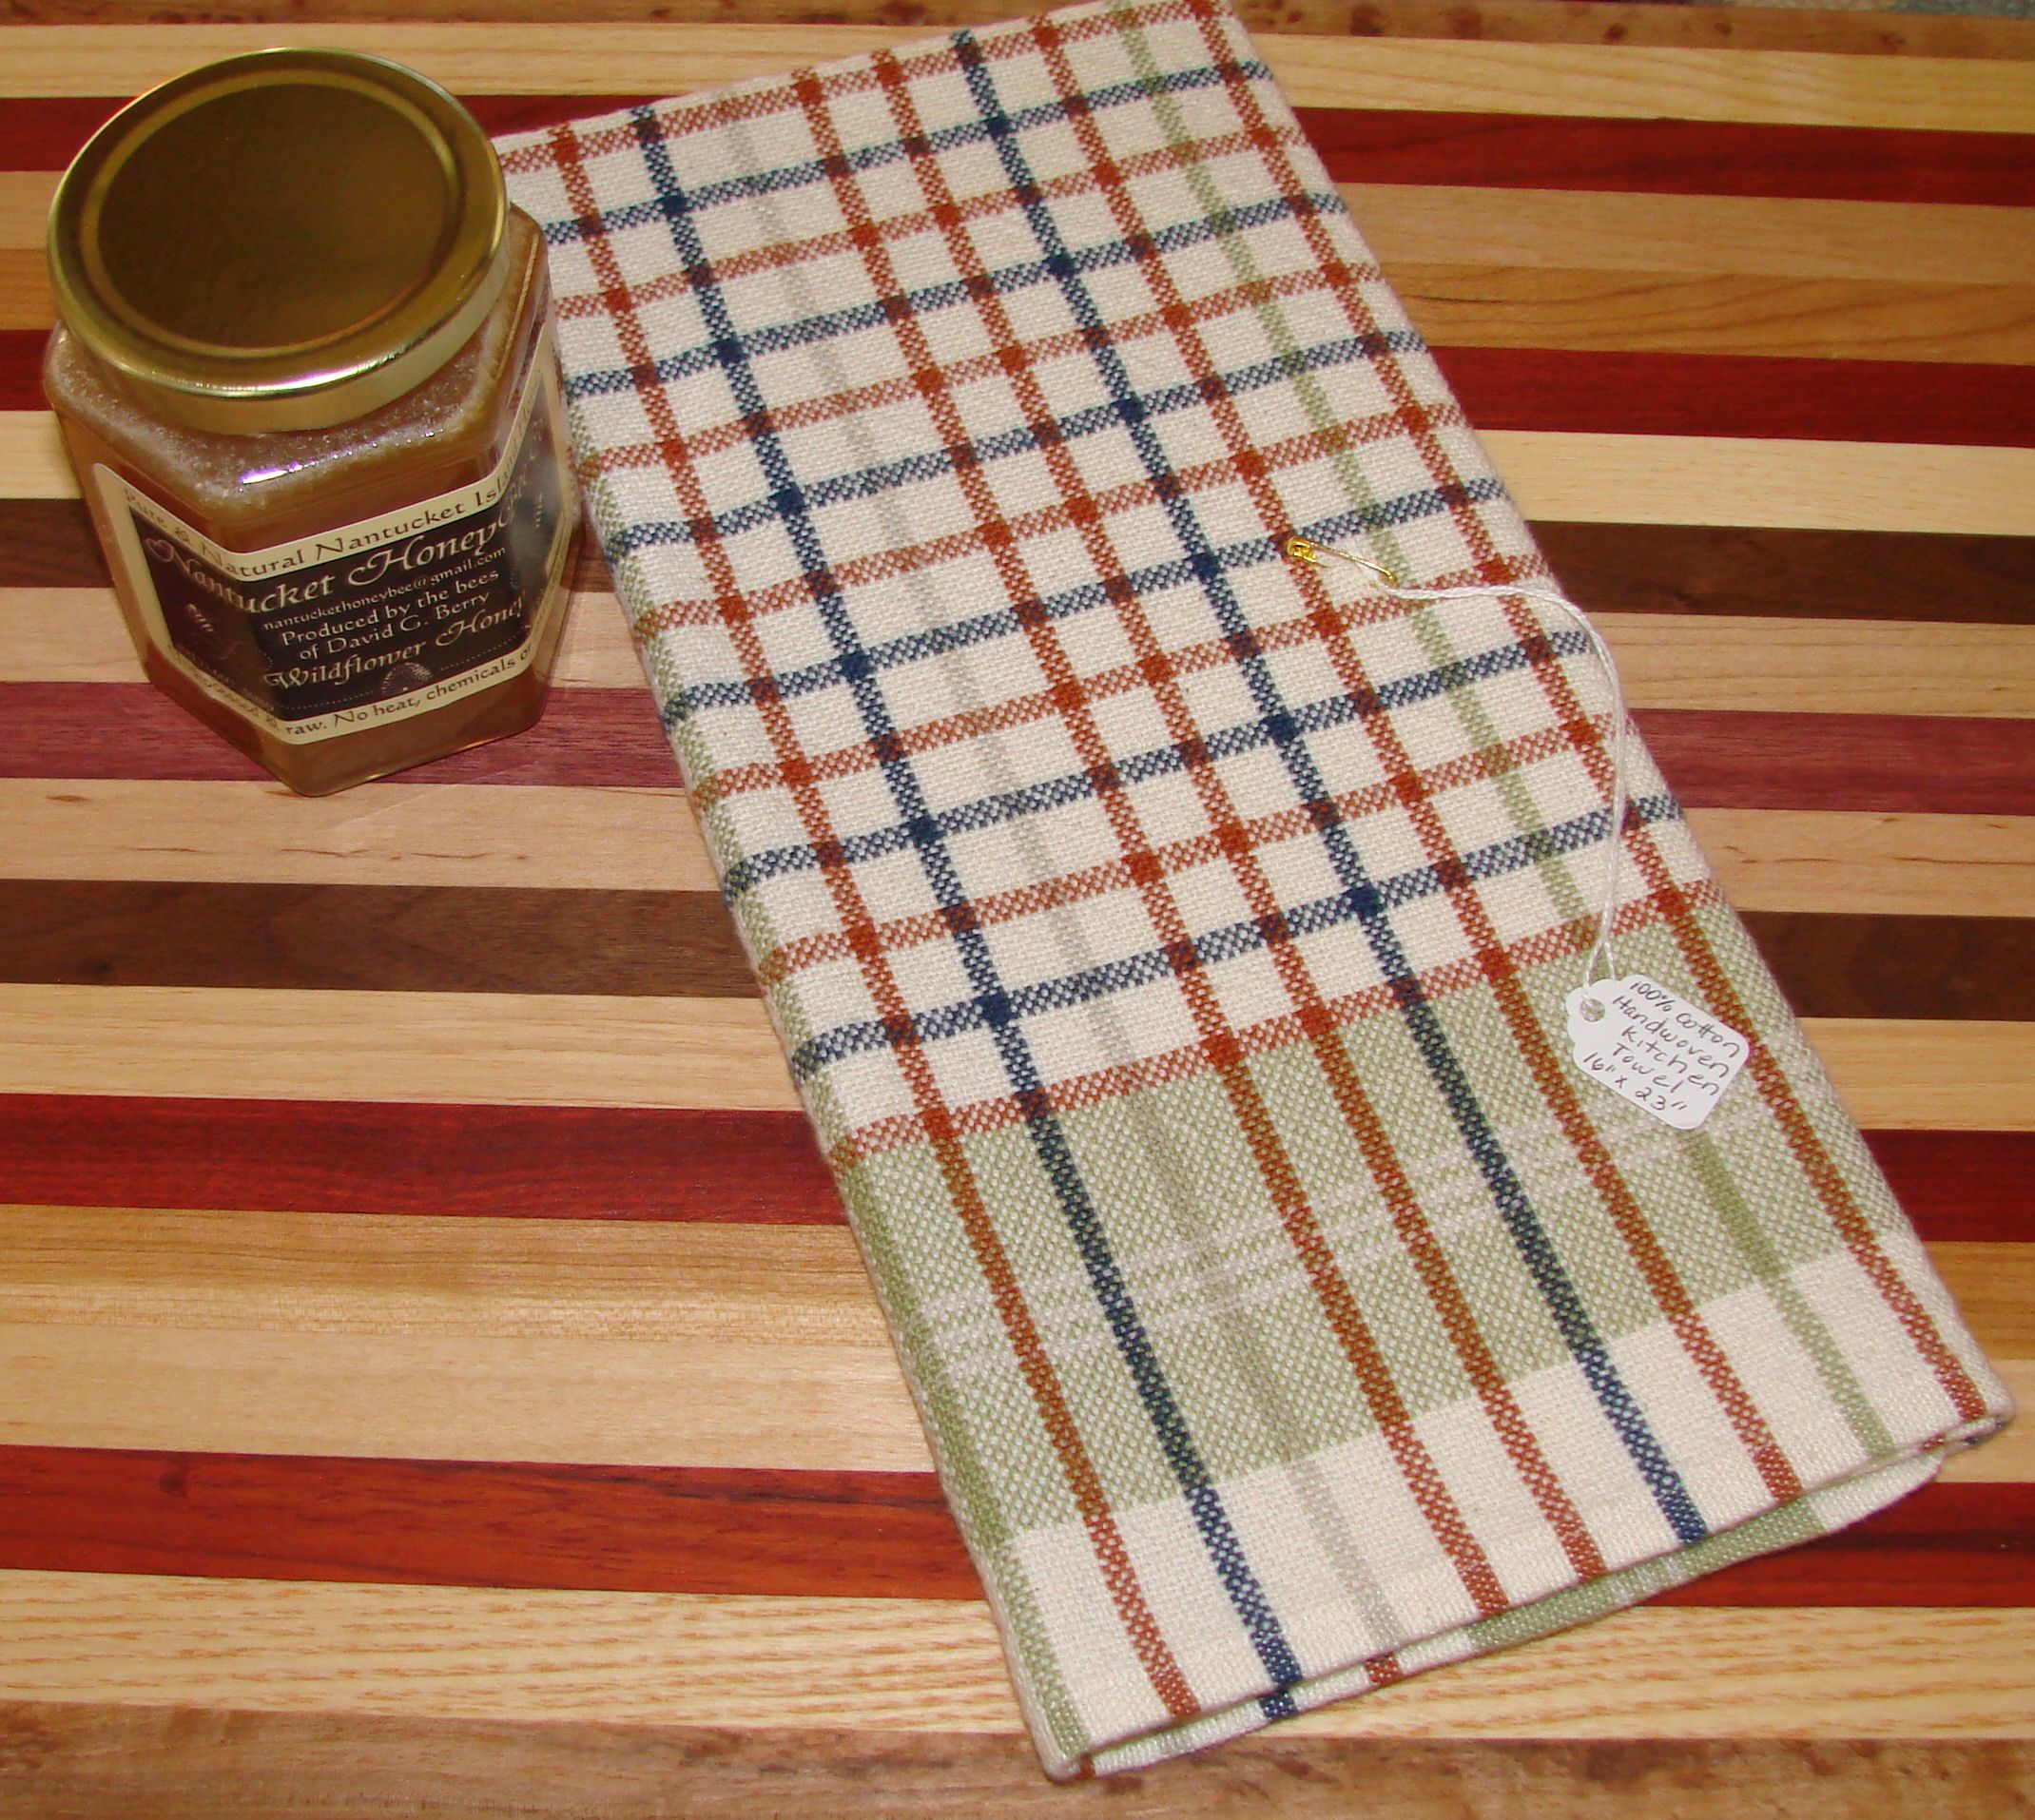 The Weave Structure For This Tea Towel Is Plain Weave But It Is Amazing Kitchen Towel Inspiration Design